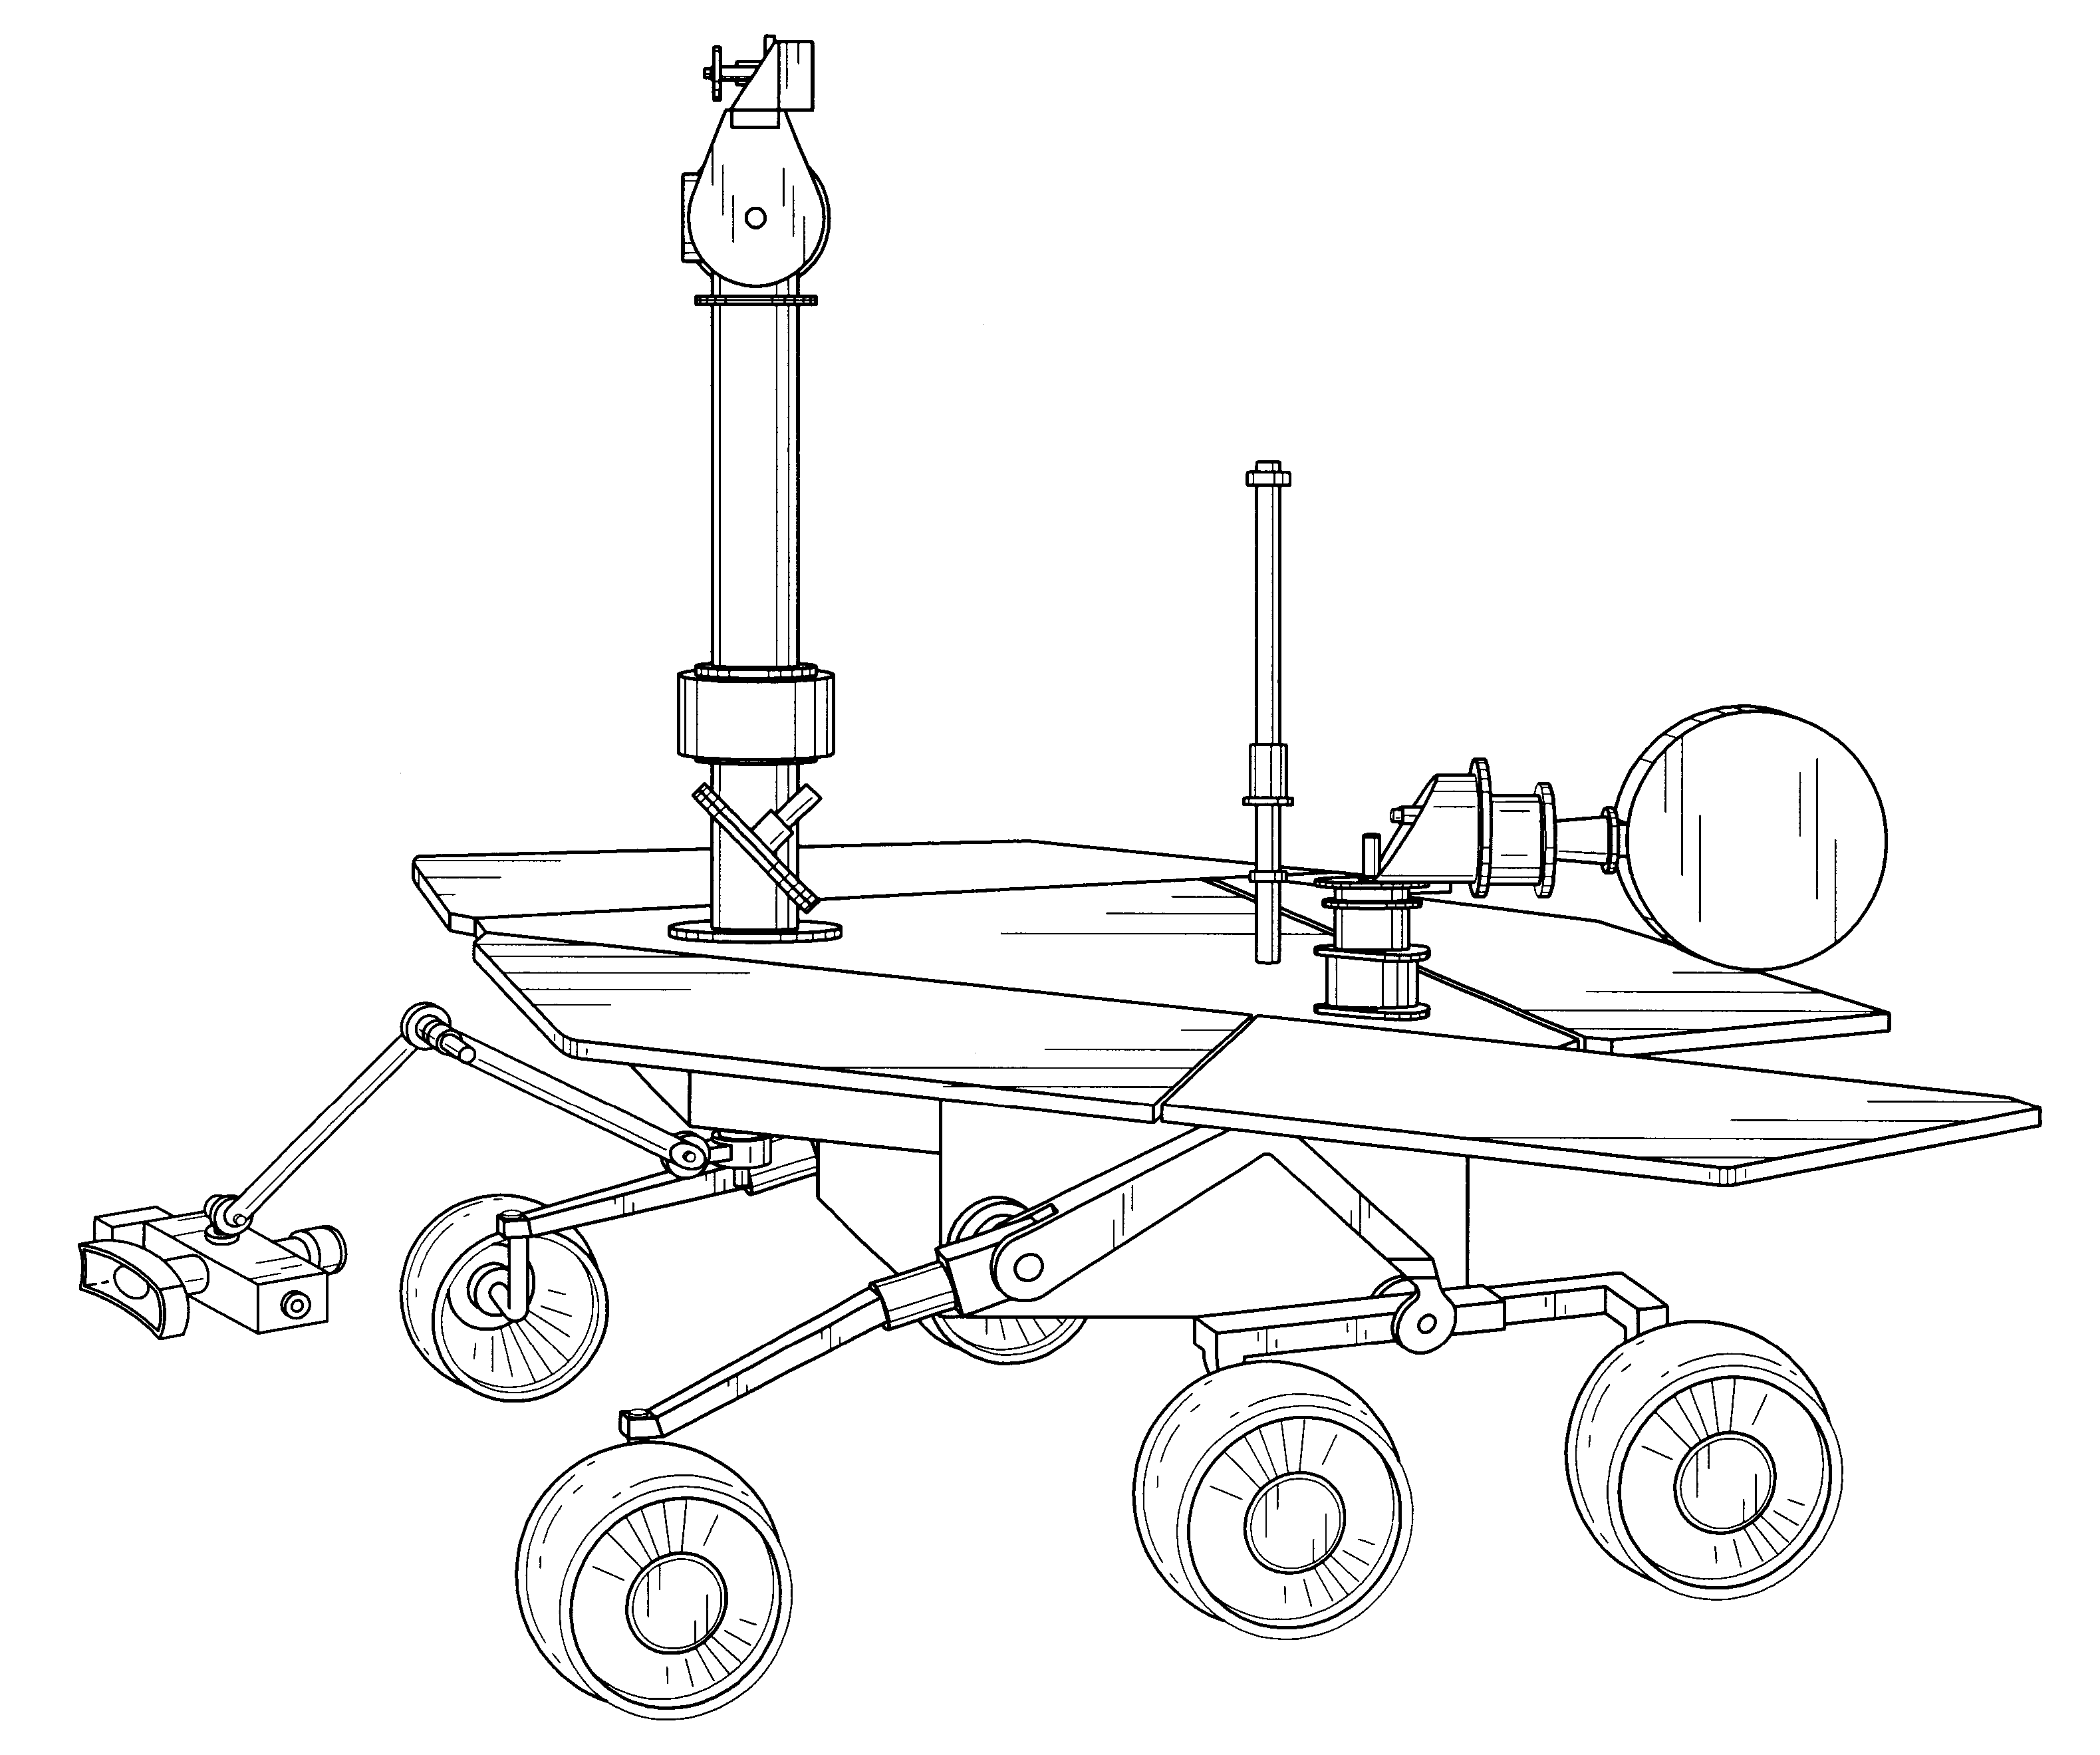 3158x2639 Images Of Simple Drawing Mars Rover Curiosity